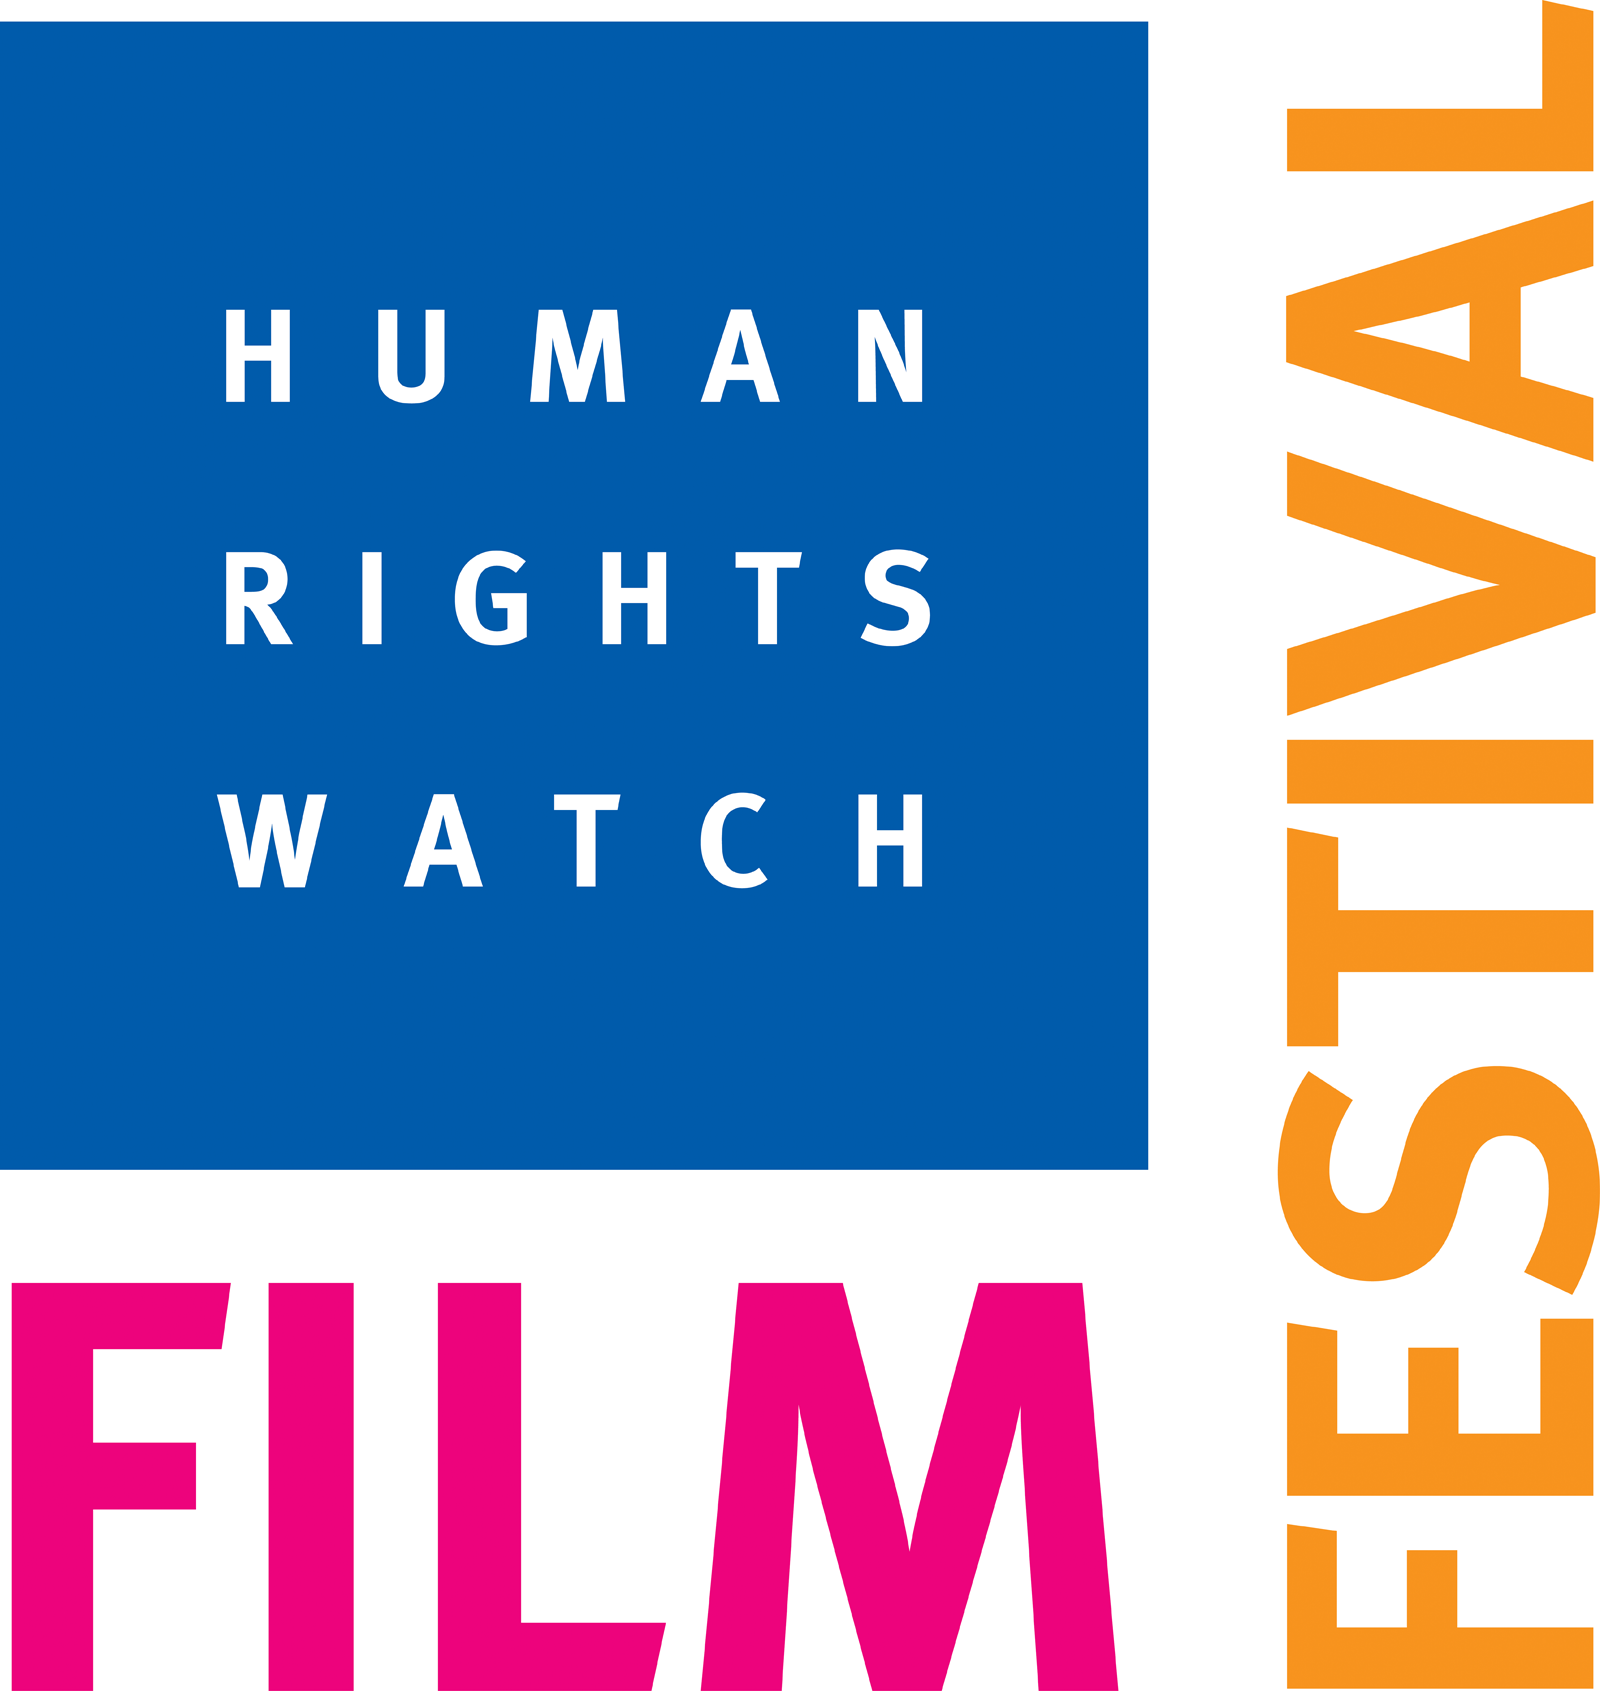 HUMAN RIGHTS WATCH FILM FESTIVAL, SAN DIEGO, CA - Saturday, Feb. 3rd 2018: 7:00pm at Museum of Photographic ArtsQ&A with directors April Hayes and Katia Maguire and San Diego advocate Marielle Downes, from Center for Community Solutions, after the screening.BUY TICKETS HERE